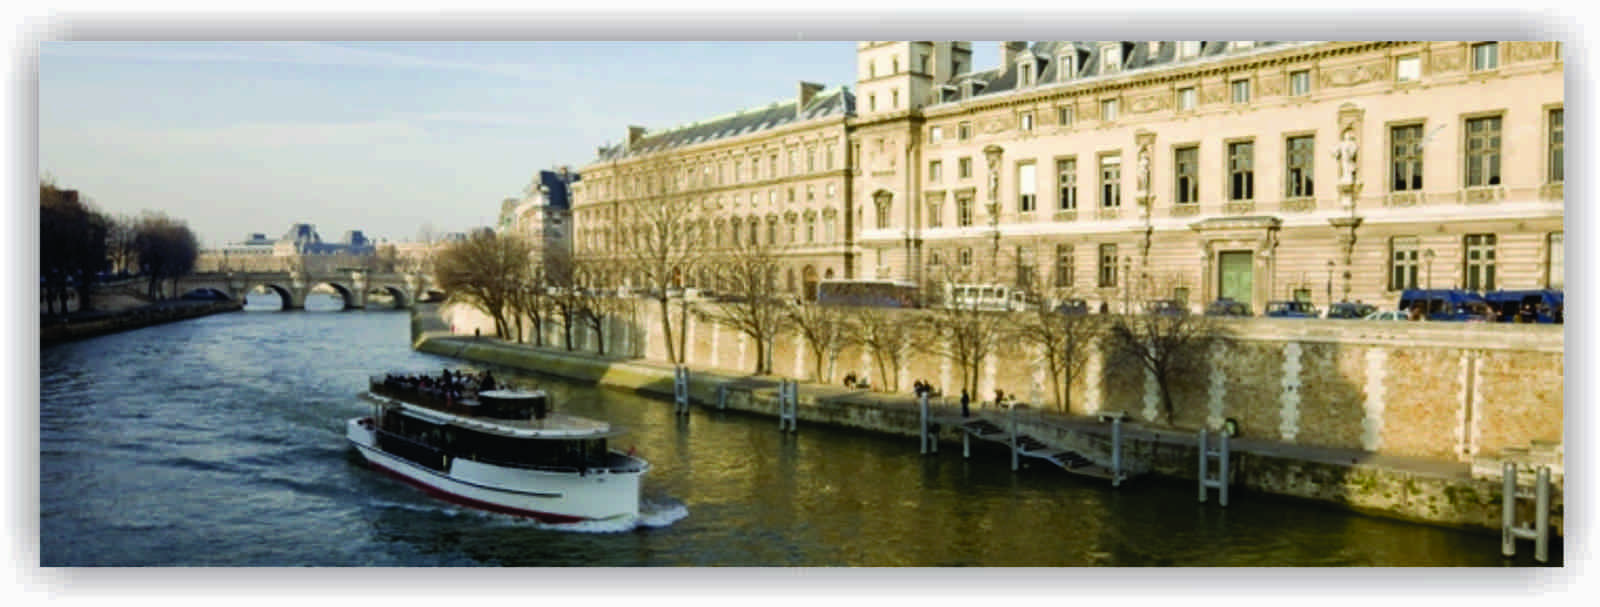 paris-header-plain-1600x